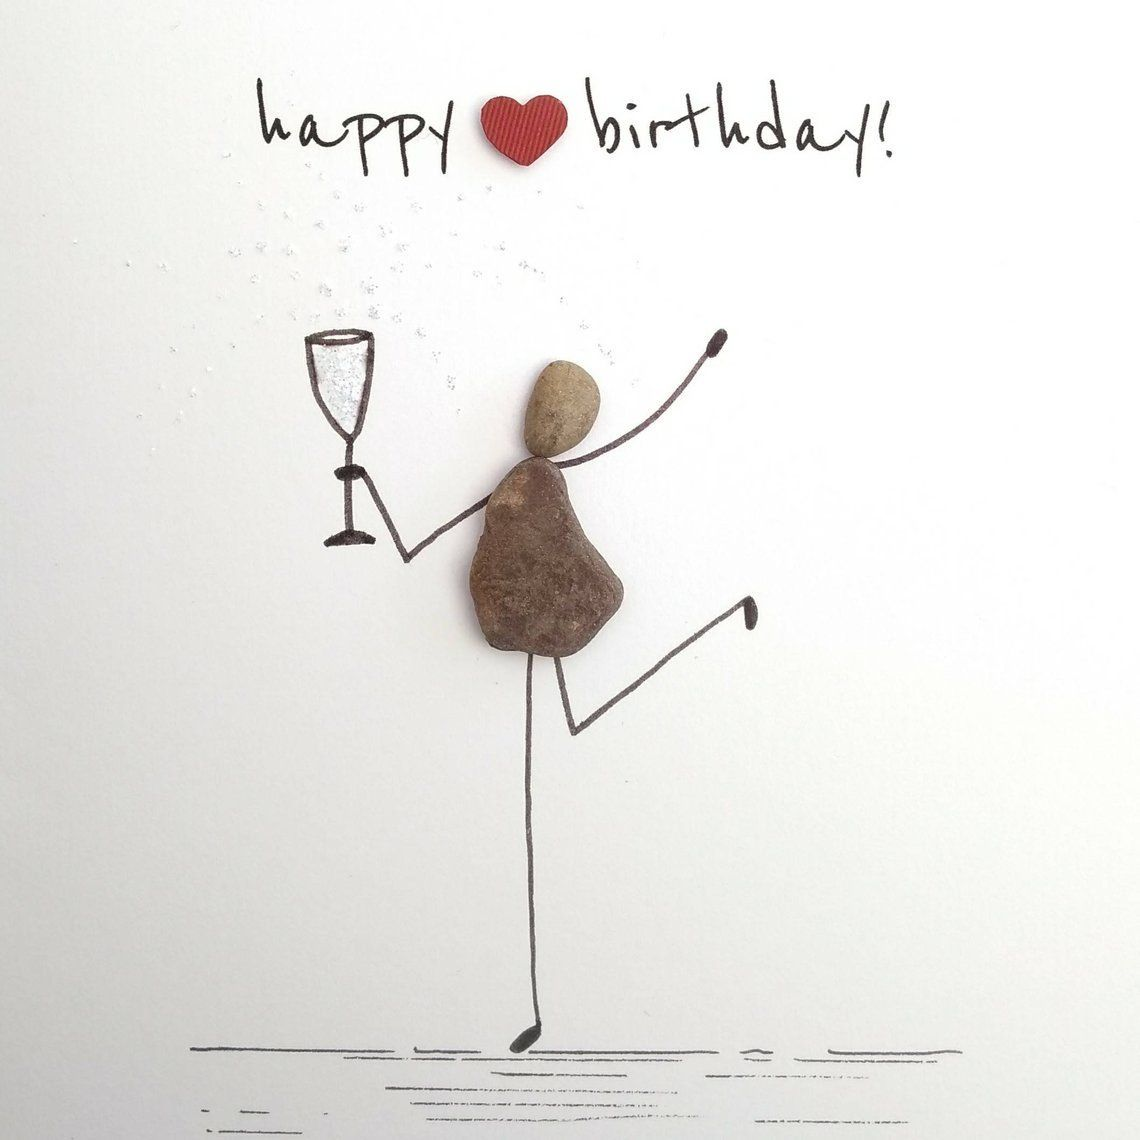 Best Totally Free Home Made Birthday Card Tips Purchasing You And Your Guests Interesting Thoughtful Or Even Exp In 2021 Pebble Pictures Pebble Art Pebble Art Family